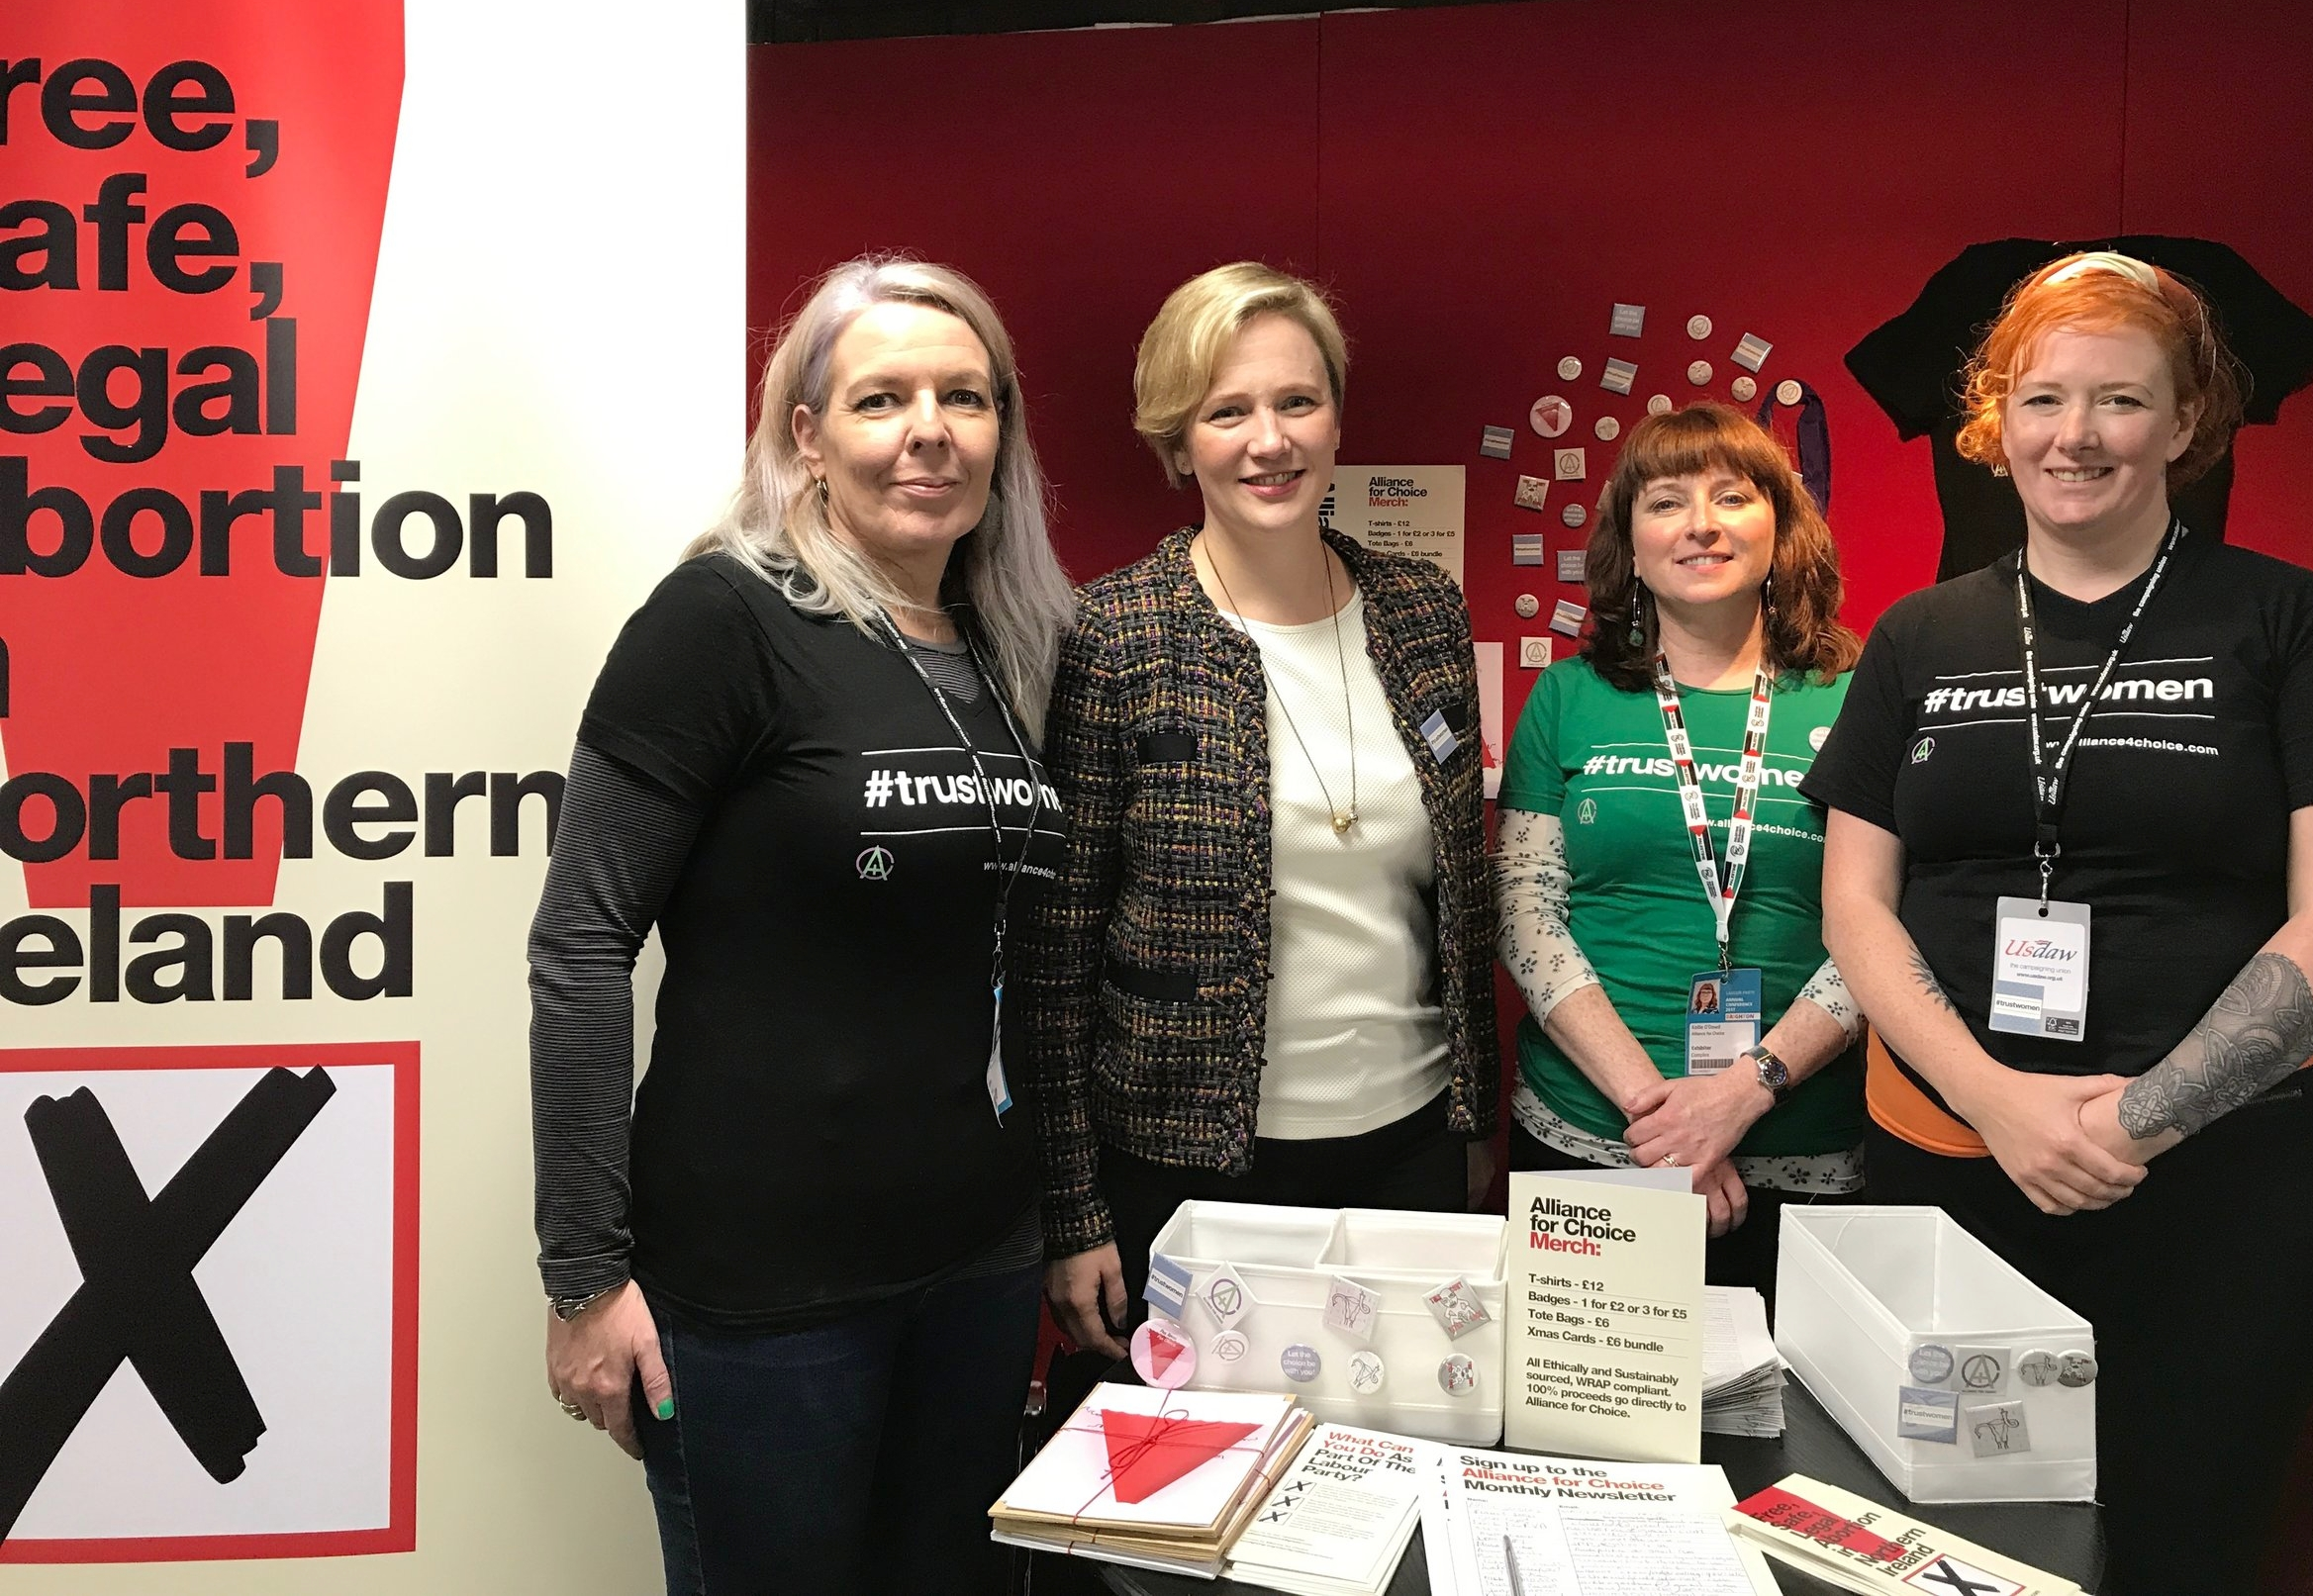 Stella Creasy MP with members of Alliance for Choice